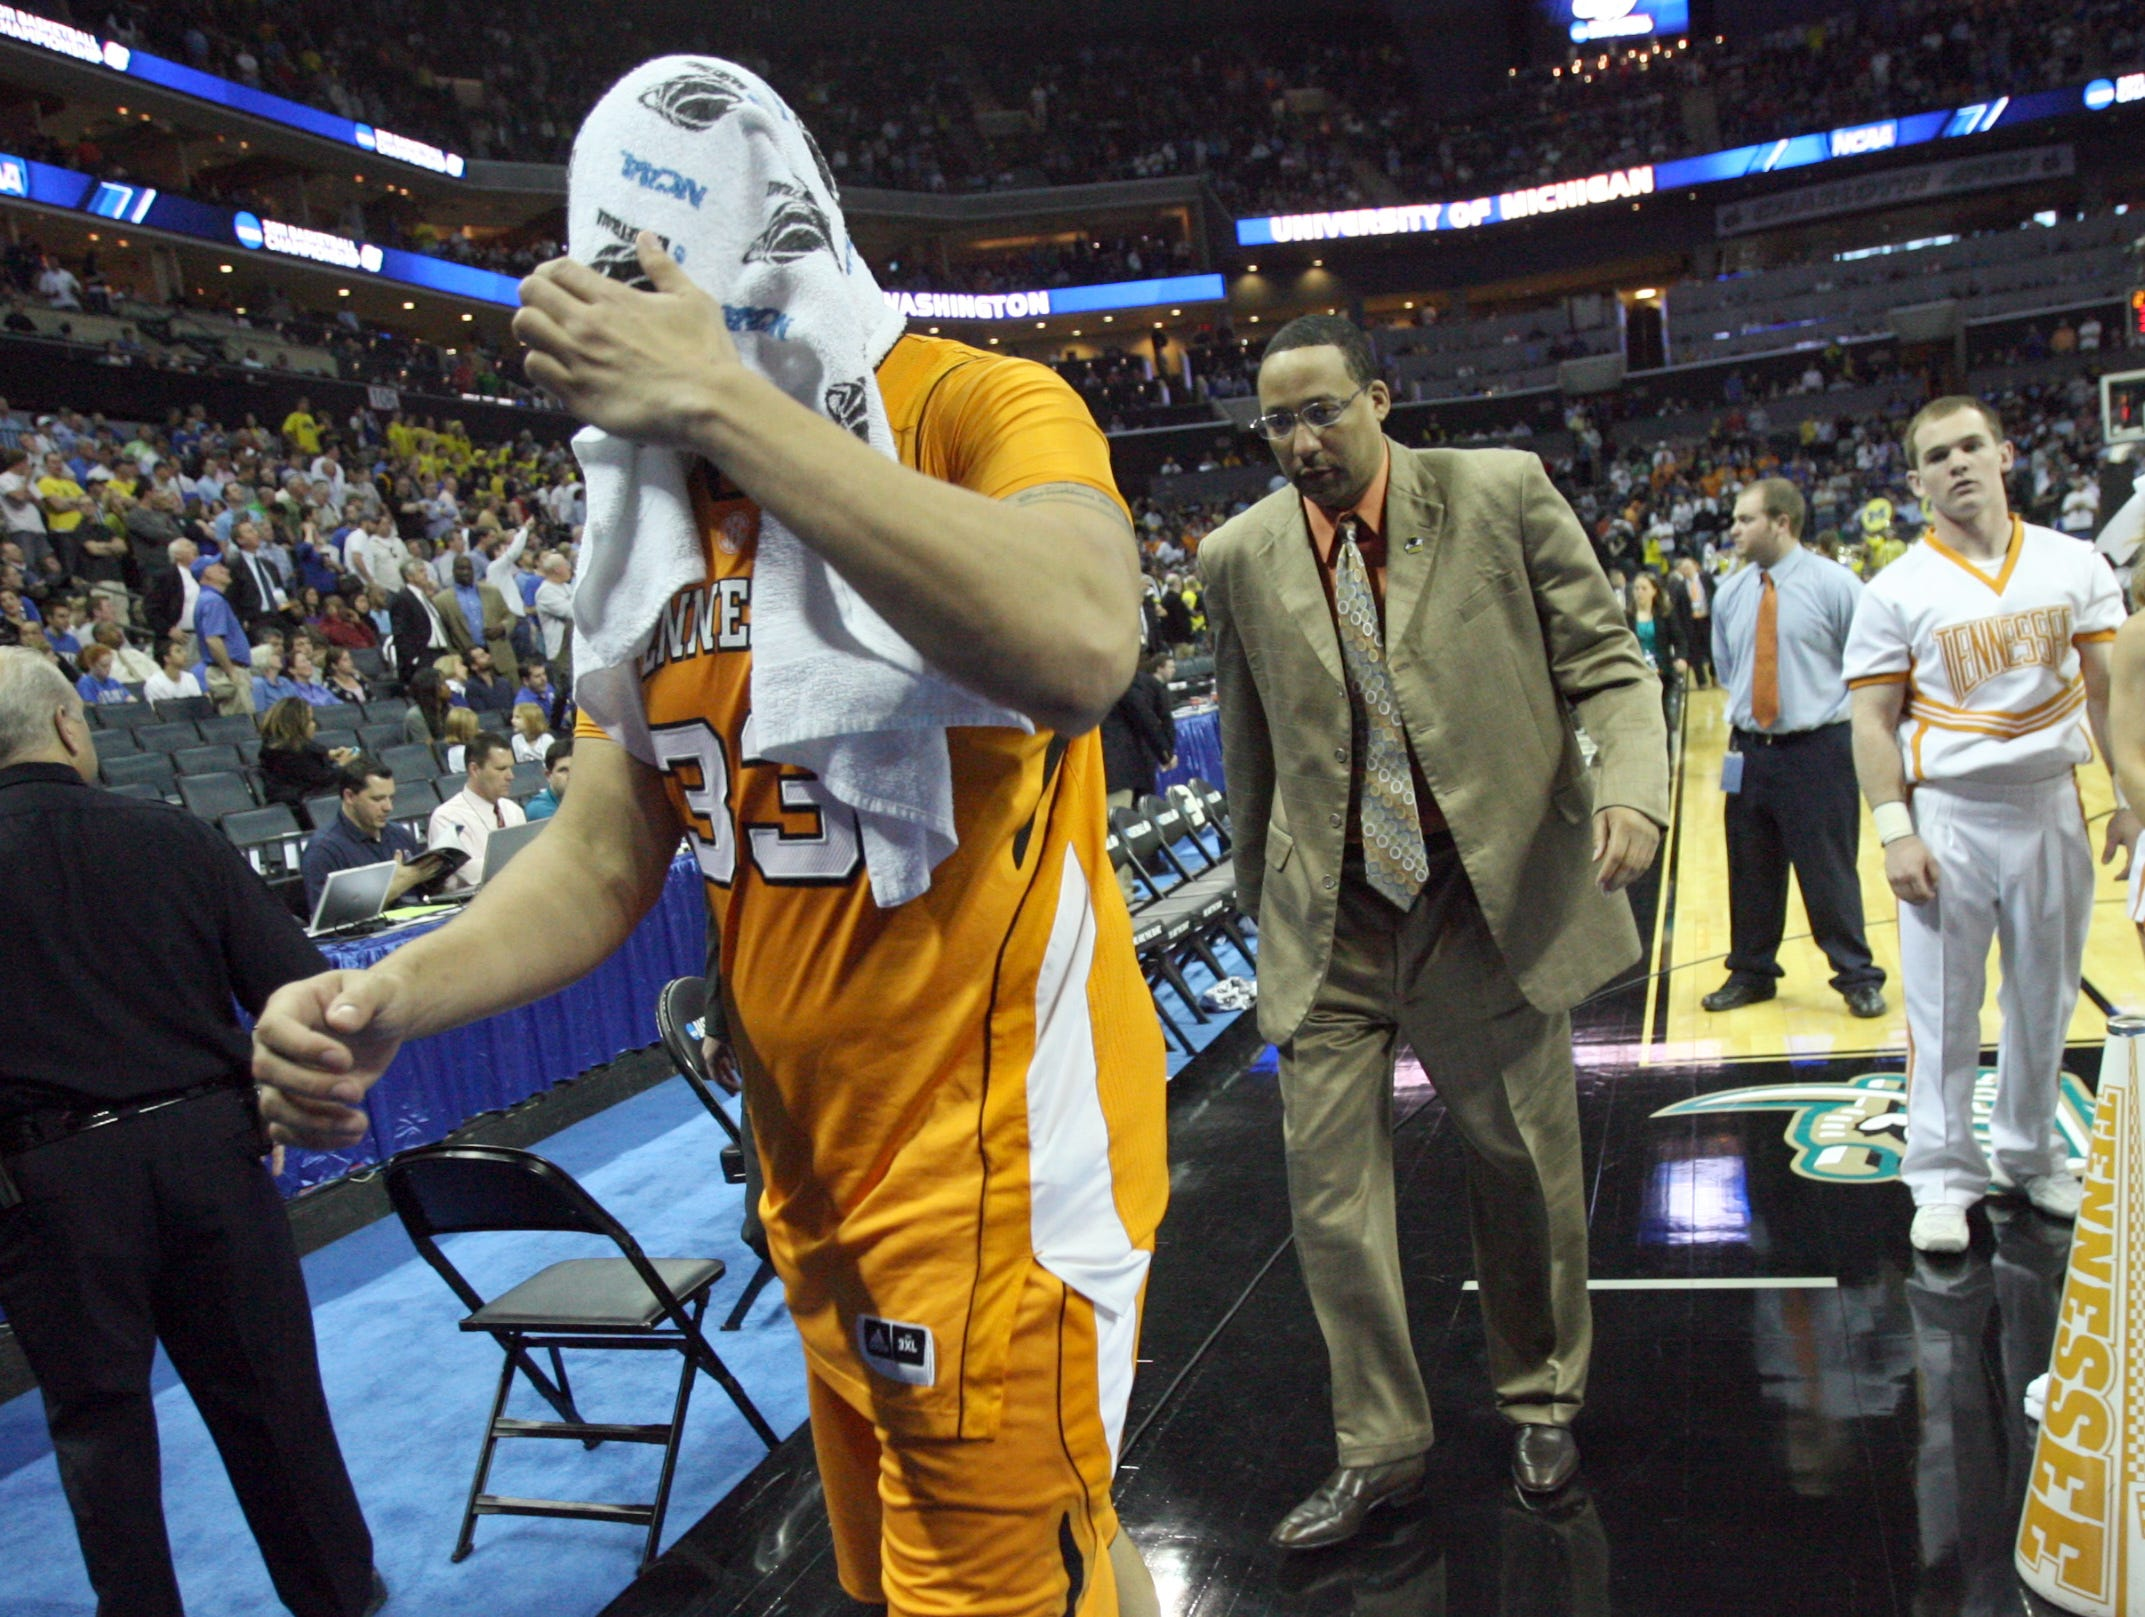 Tennessee center Brian Williams walks off the court after the Vols lost 75-45 to the Michigan Wolverines during the second round of the NCAA Tournament at Time Warner Cable Arena in Charlotte, N.C. Friday, March 18, 2011.  Williams scored two points for the Vols with two steals during the game.